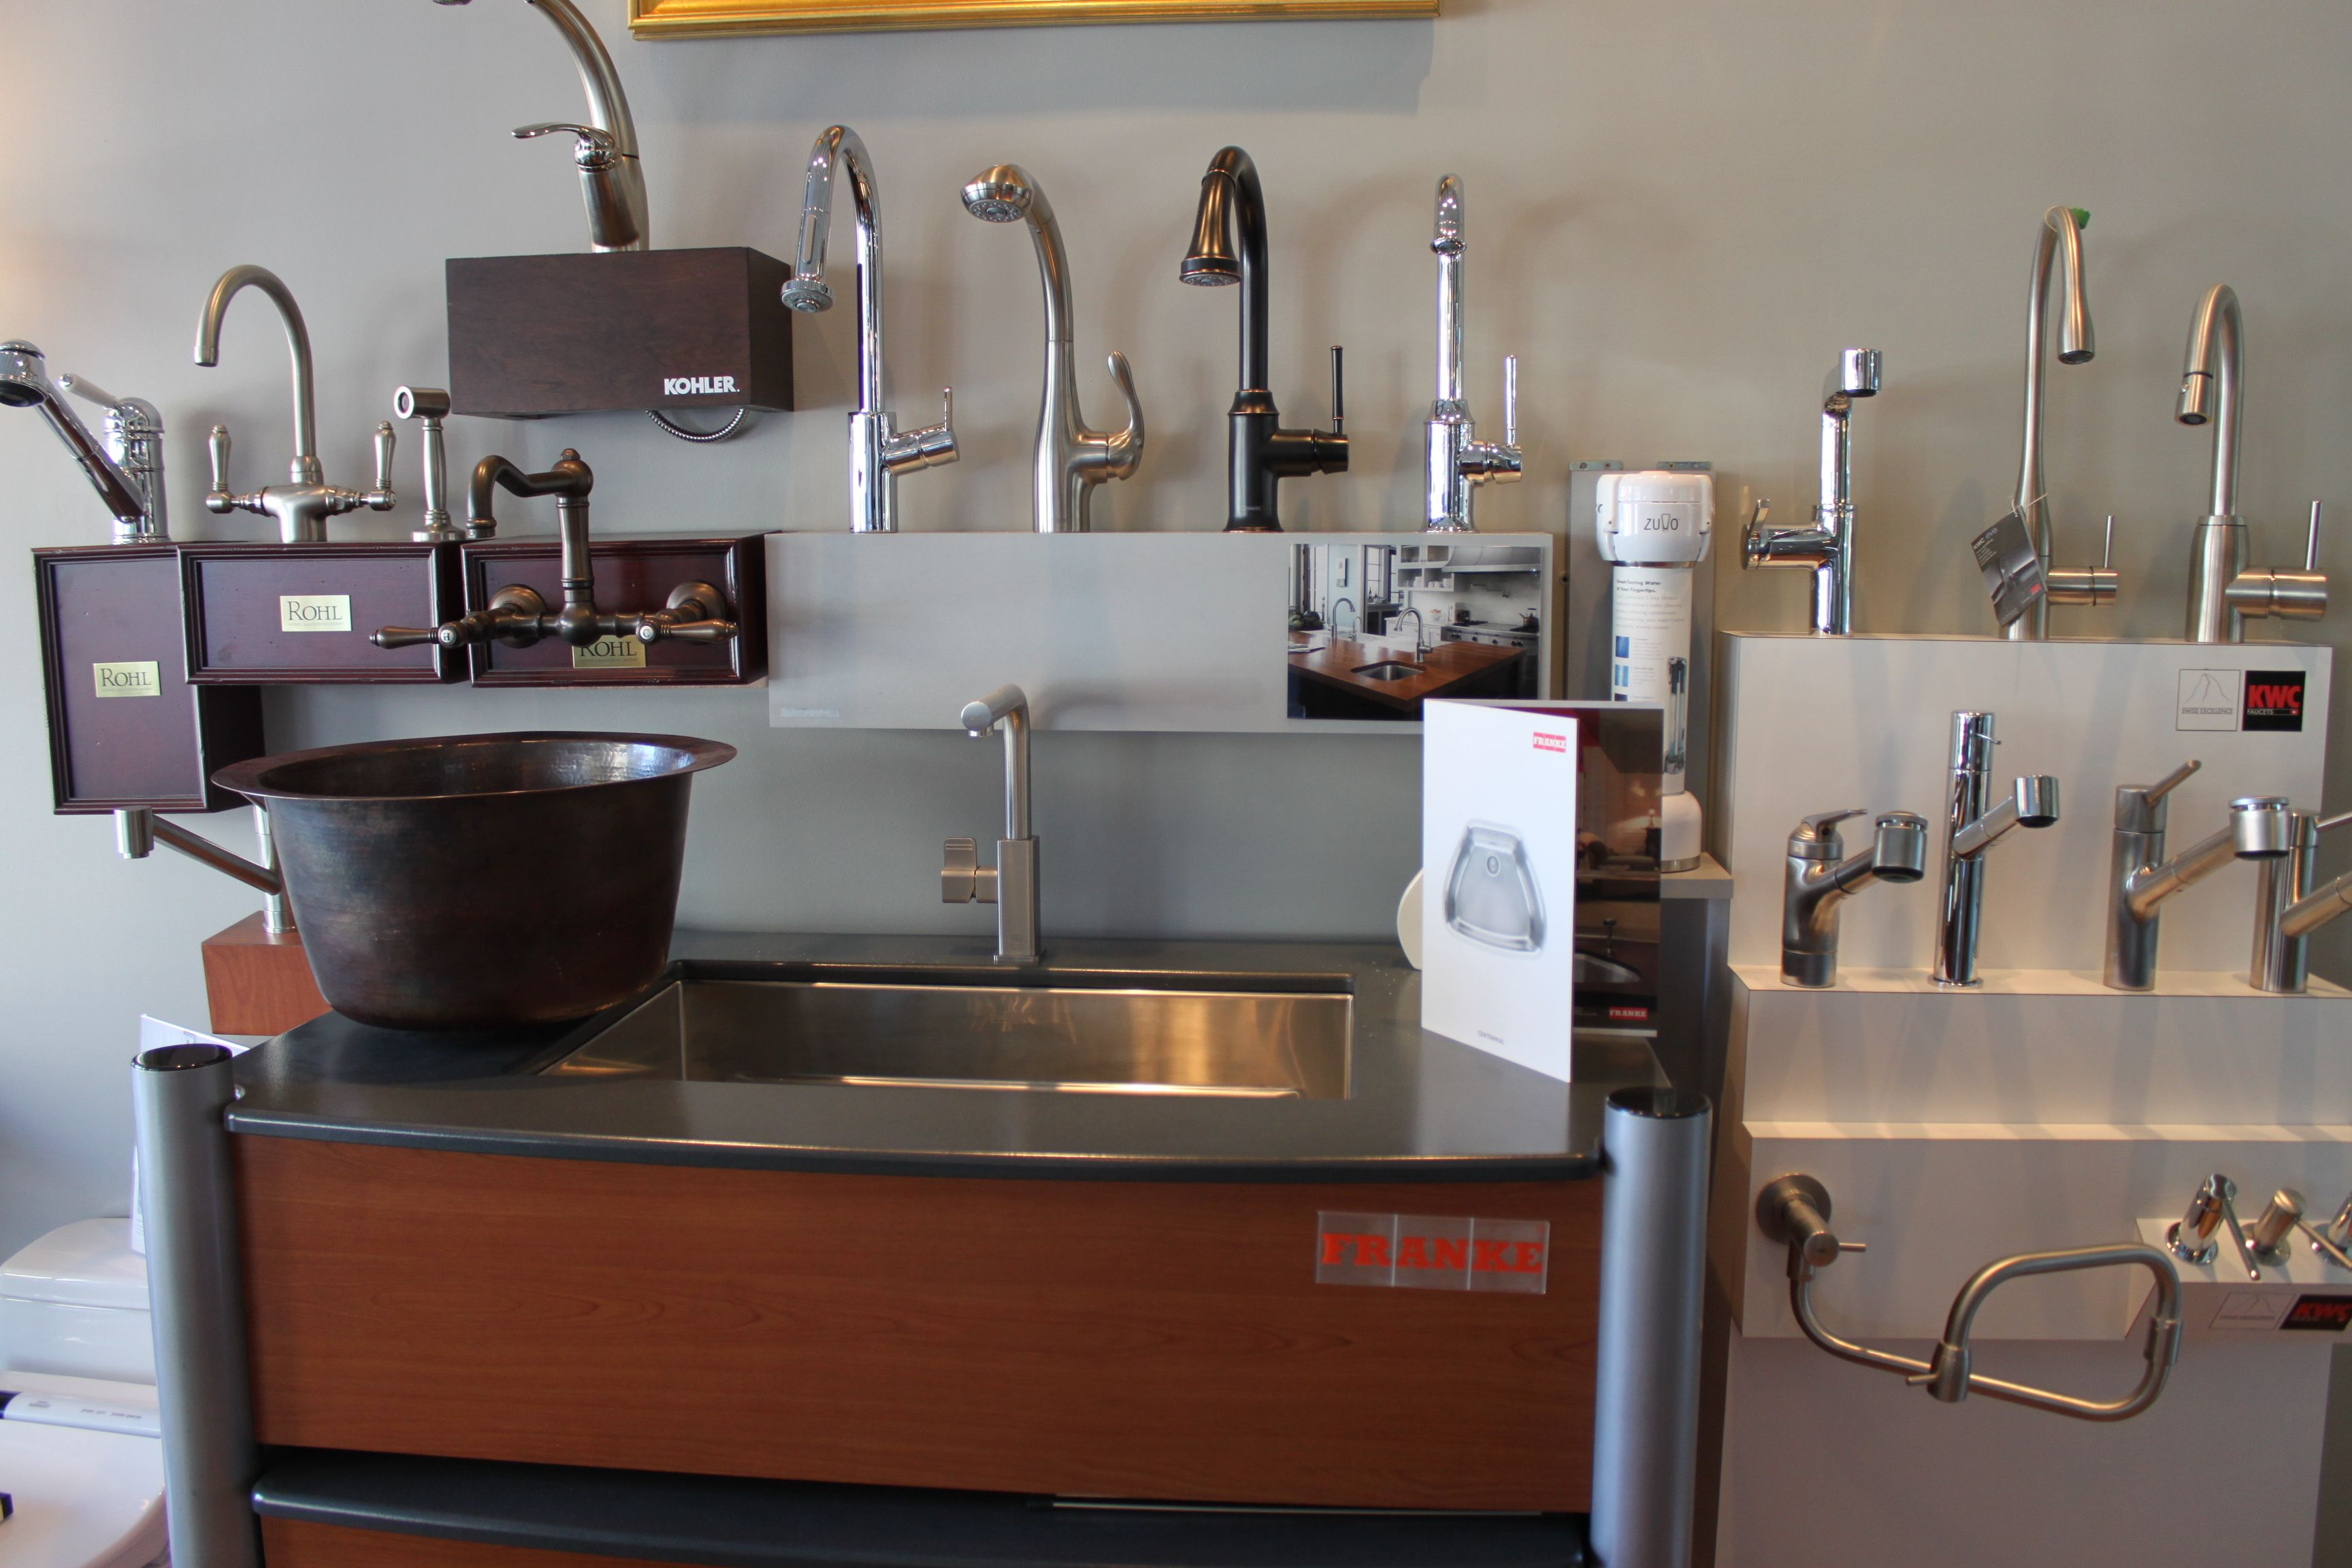 The Portland showroom also has a wide variety of kitchen faucets on ...